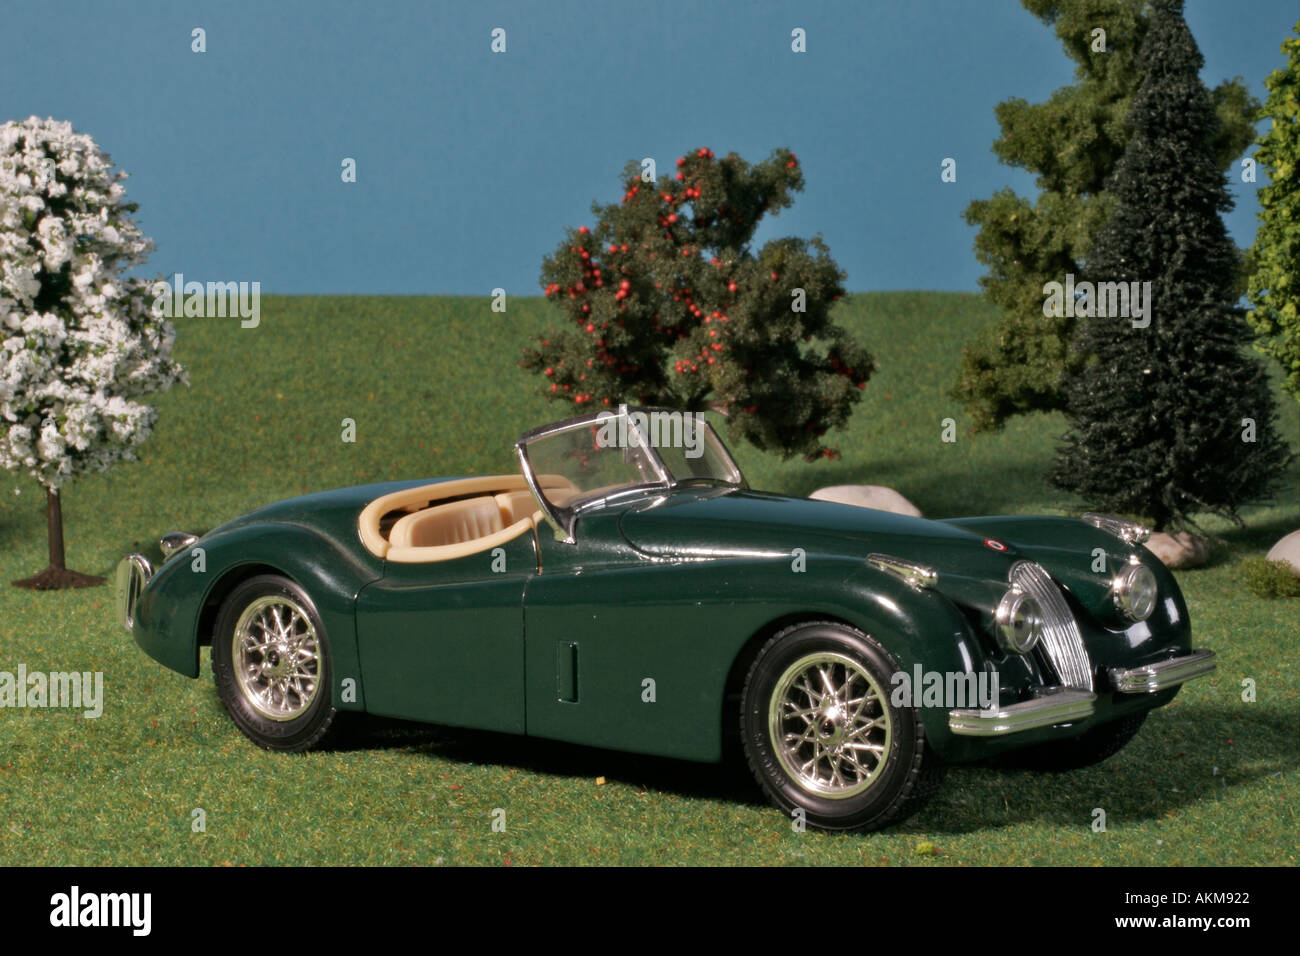 oldtimer car model jaguar xk 120 1948 stock photo royalty. Black Bedroom Furniture Sets. Home Design Ideas